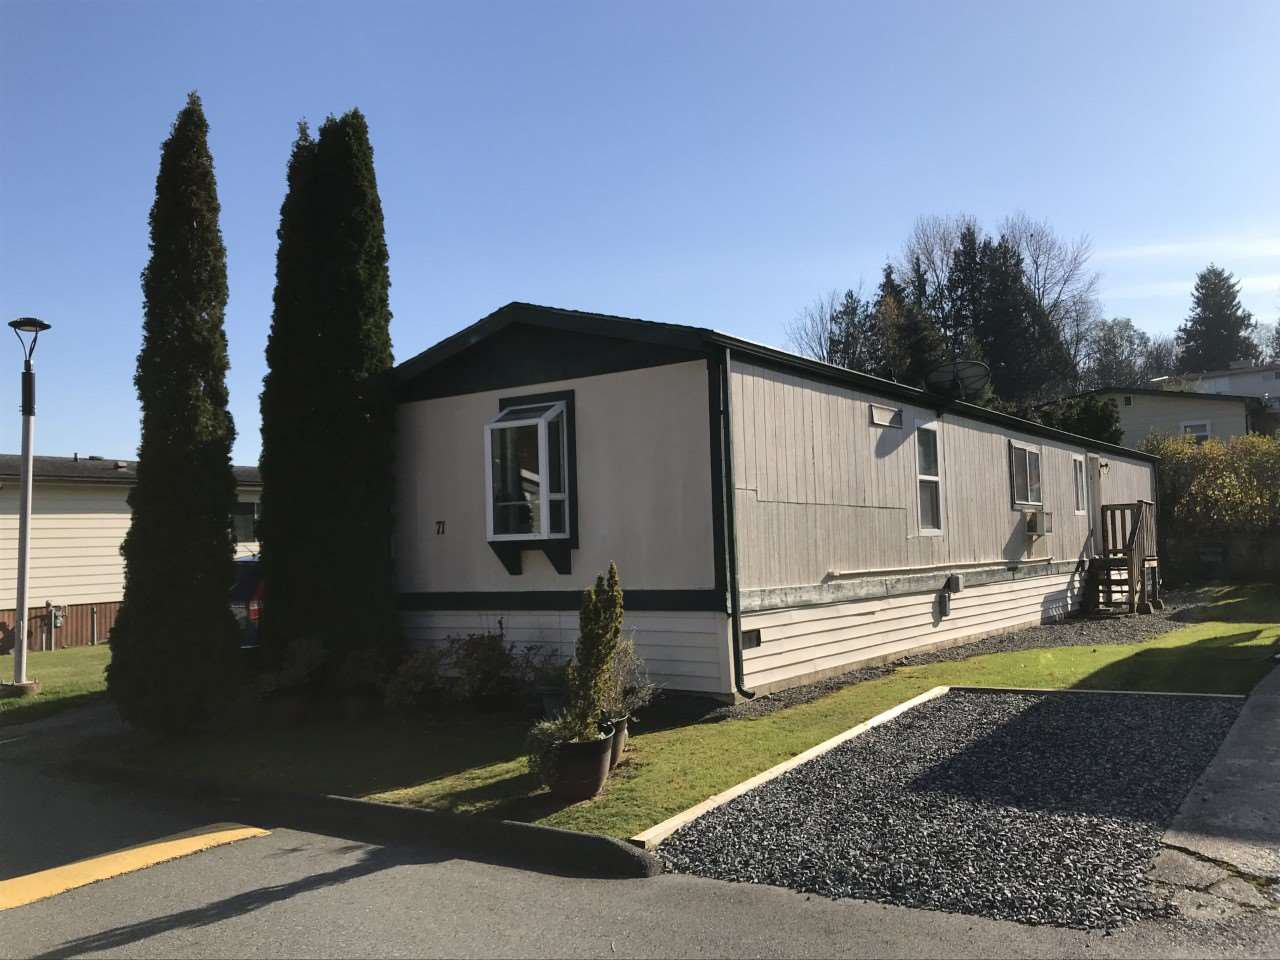 """Photo 1: Photos: 71 3300 HORN Street in Abbotsford: Central Abbotsford Manufactured Home for sale in """"Georgian Park"""" : MLS®# R2423912"""